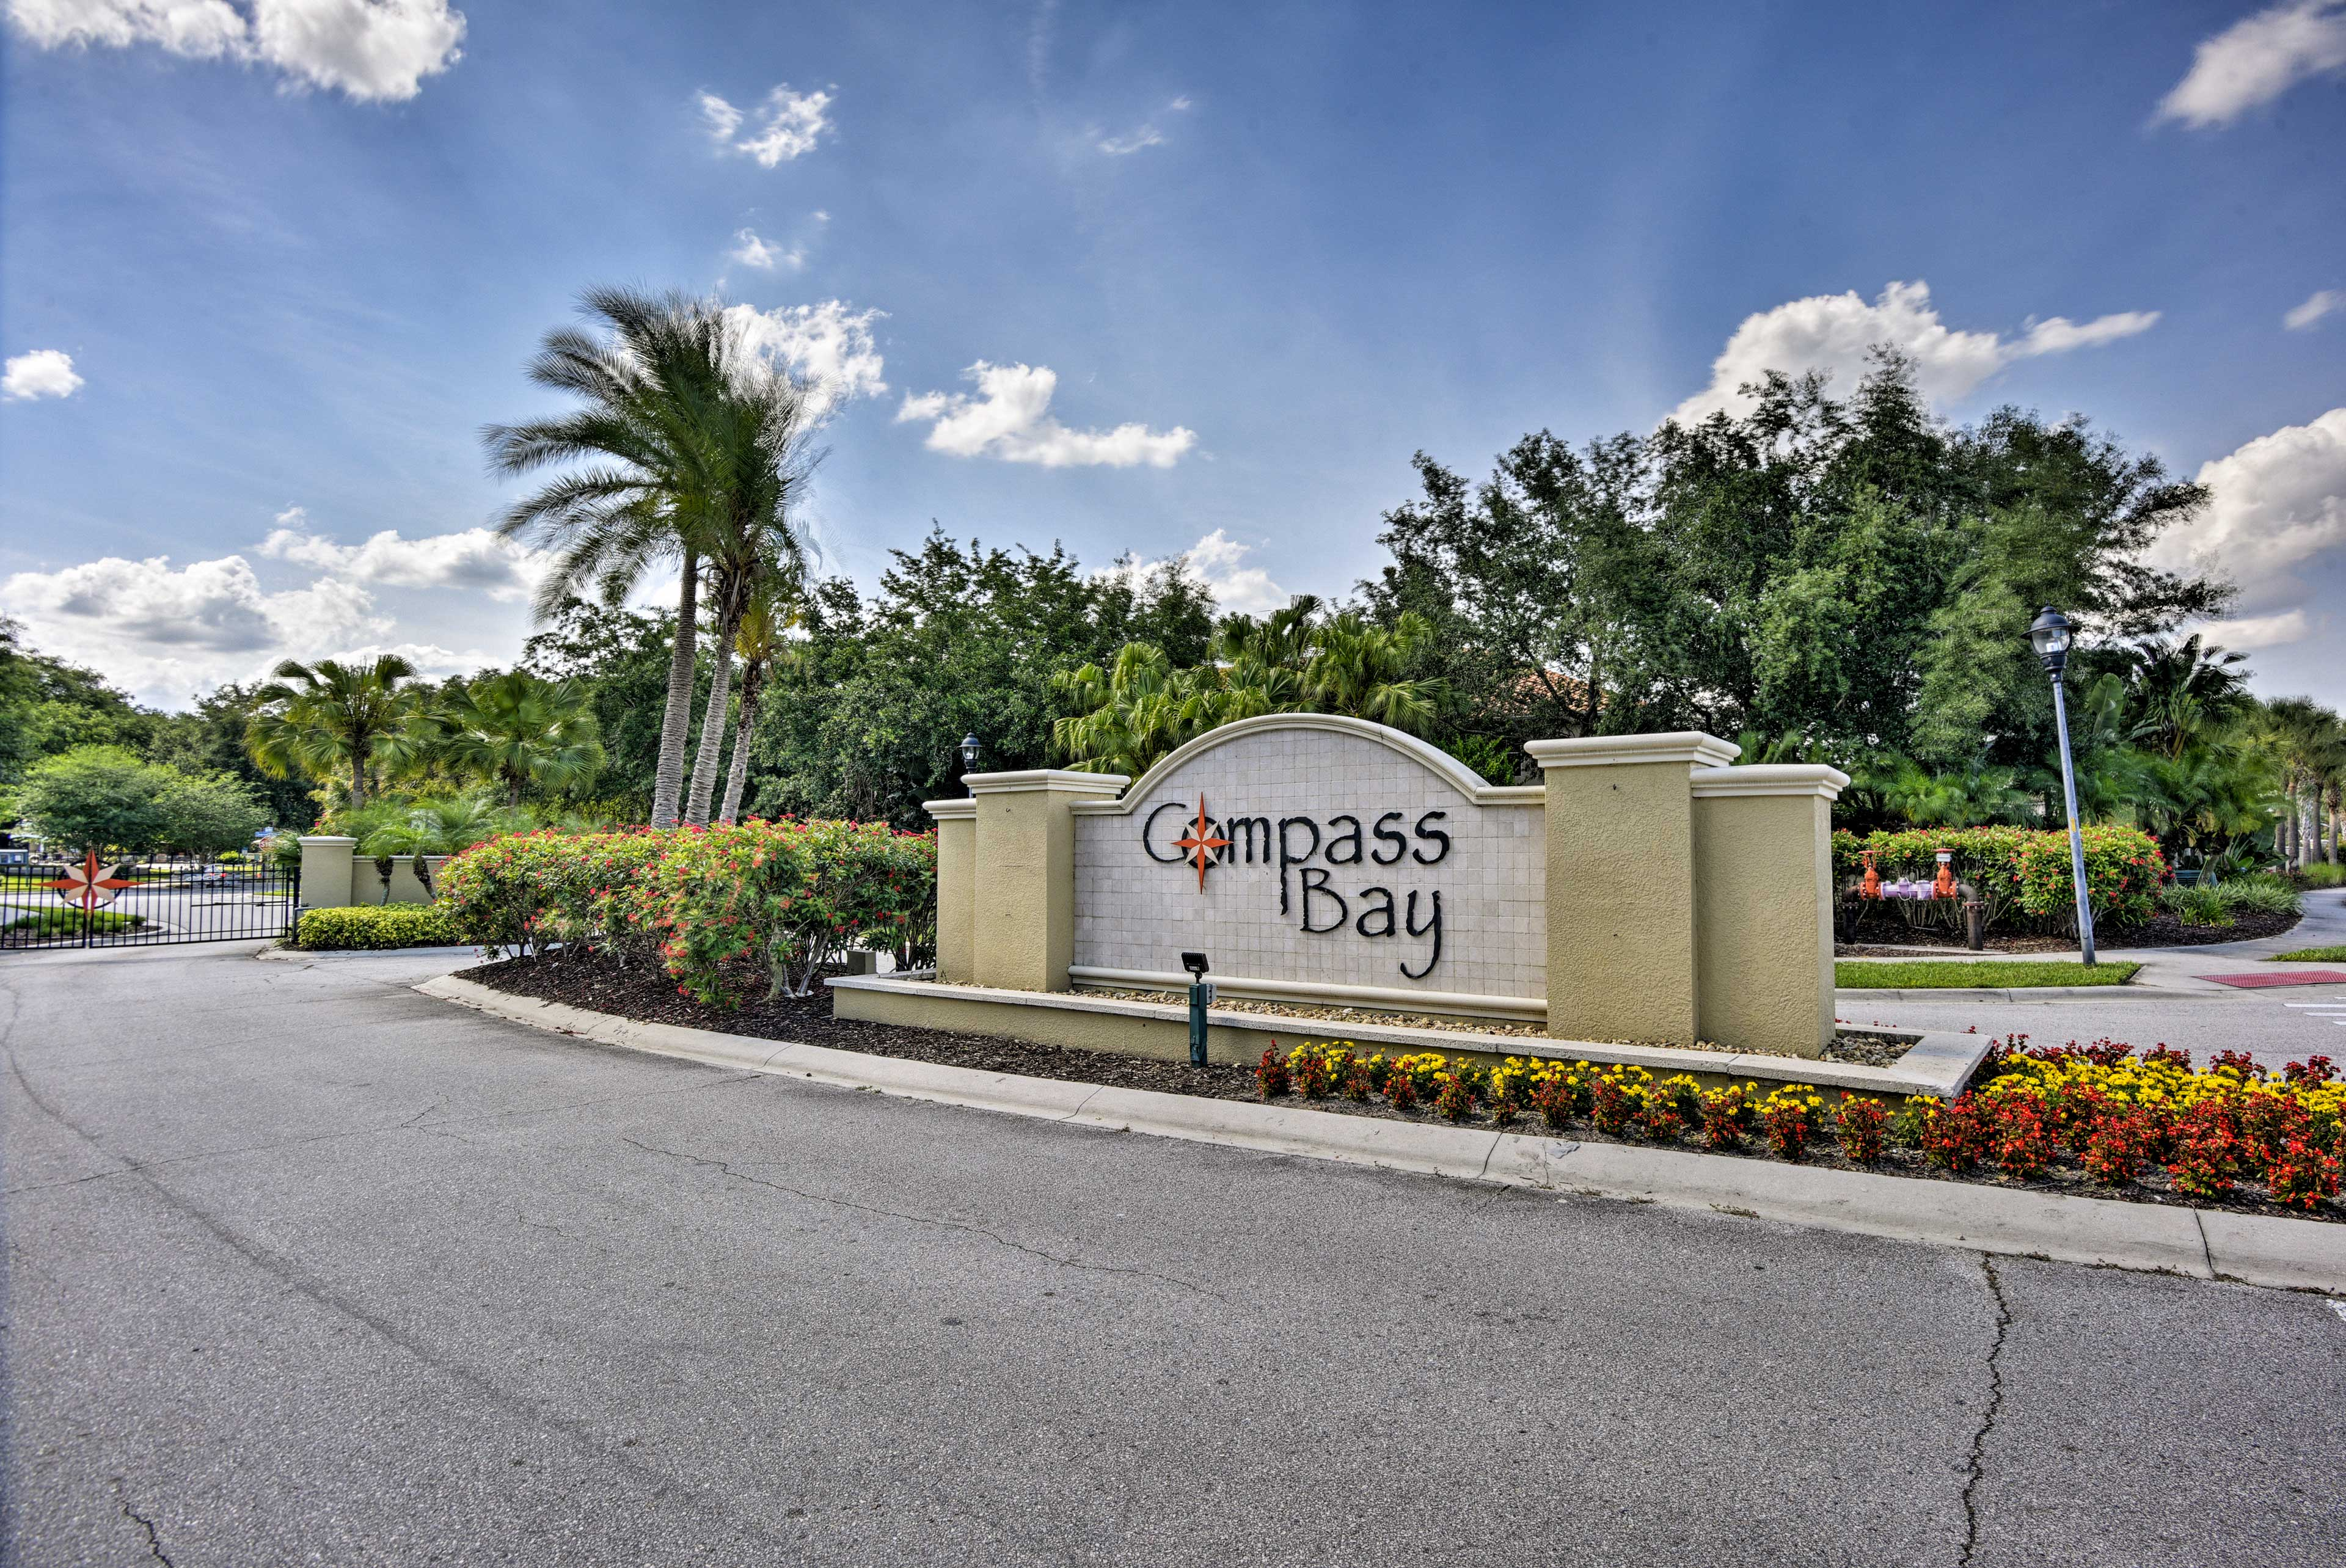 Get ready for an amazing stay in Compass Bay!